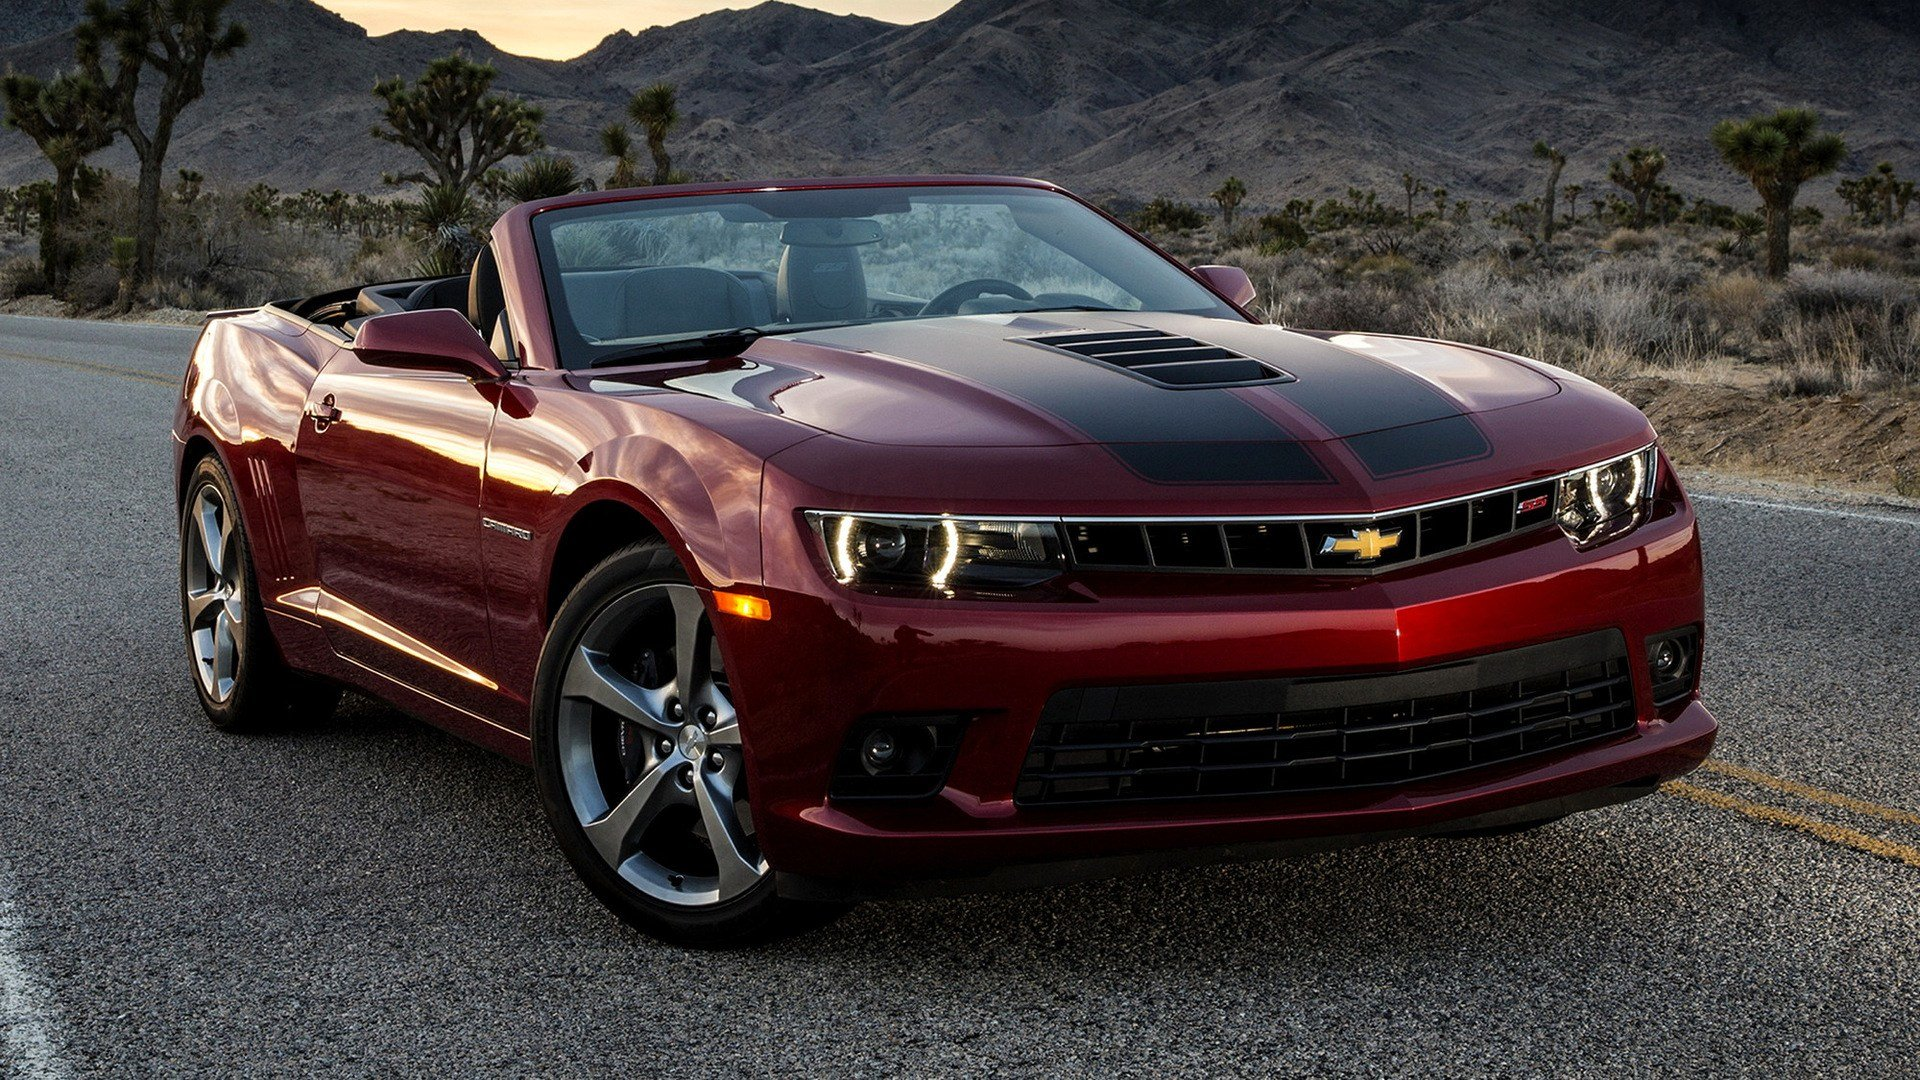 New 2014 Chevrolet Camaro Ss Convertible Wallpapers And Hd On This Month